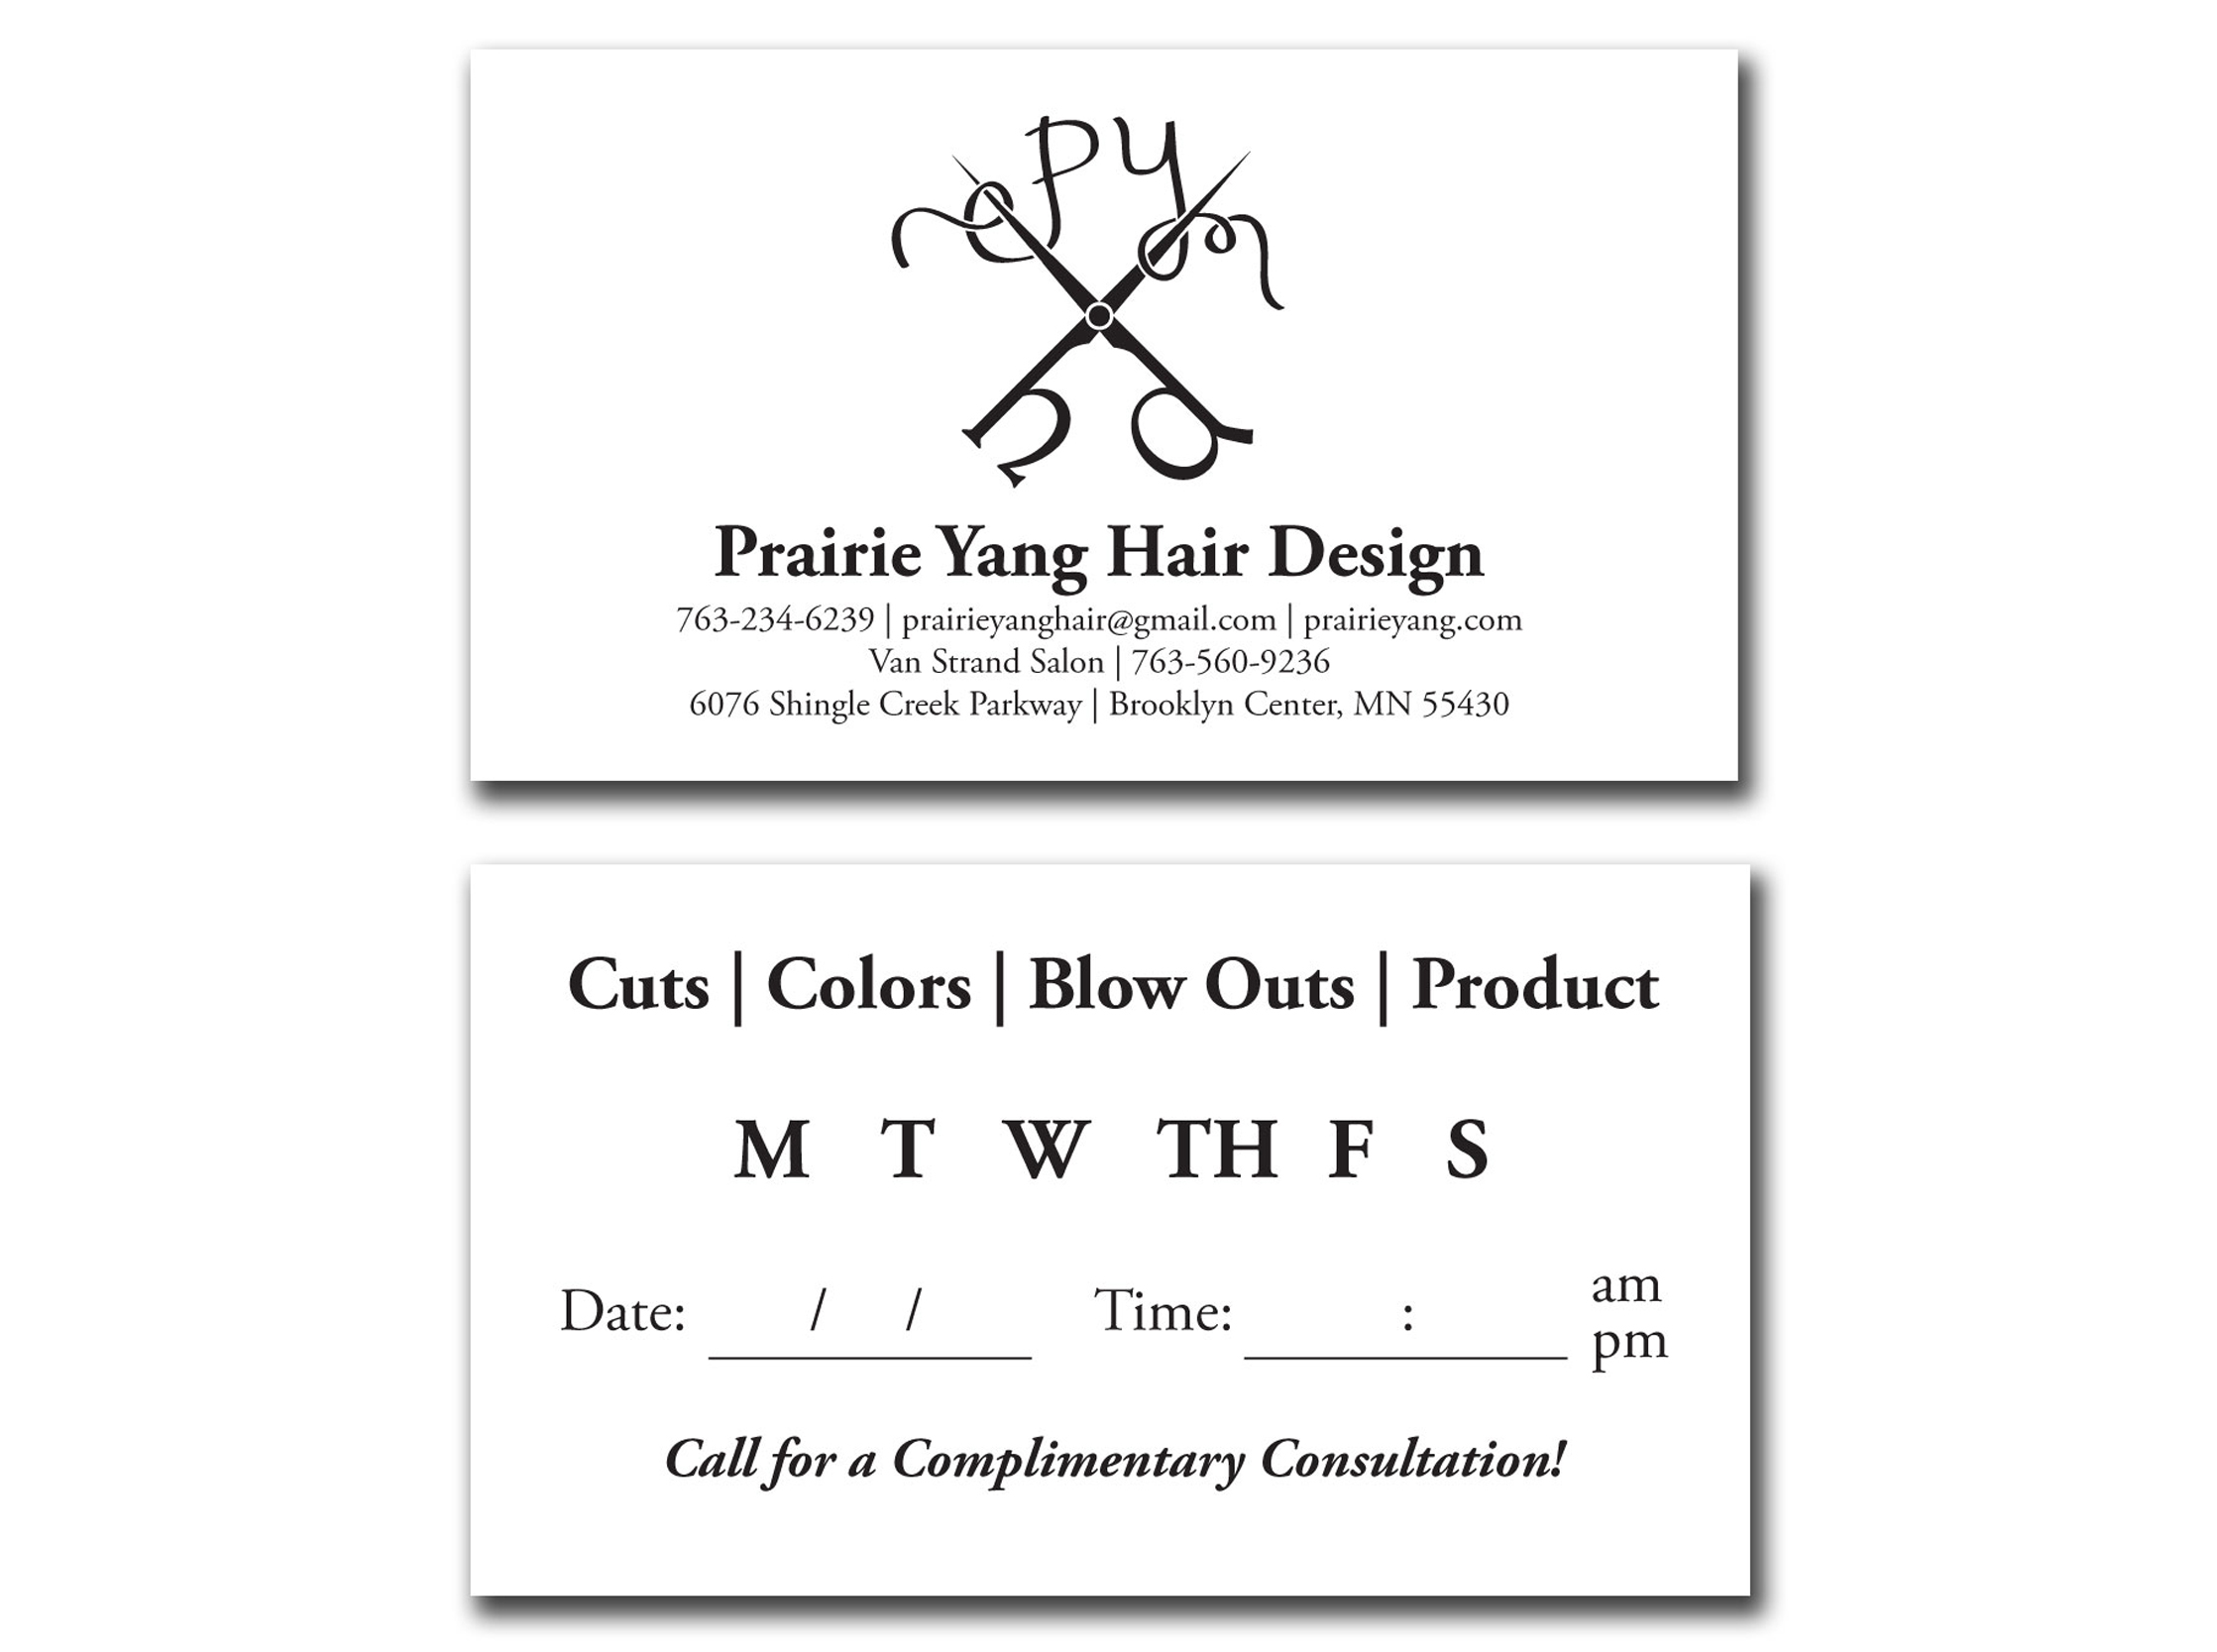 Prairie Yang Hair Design